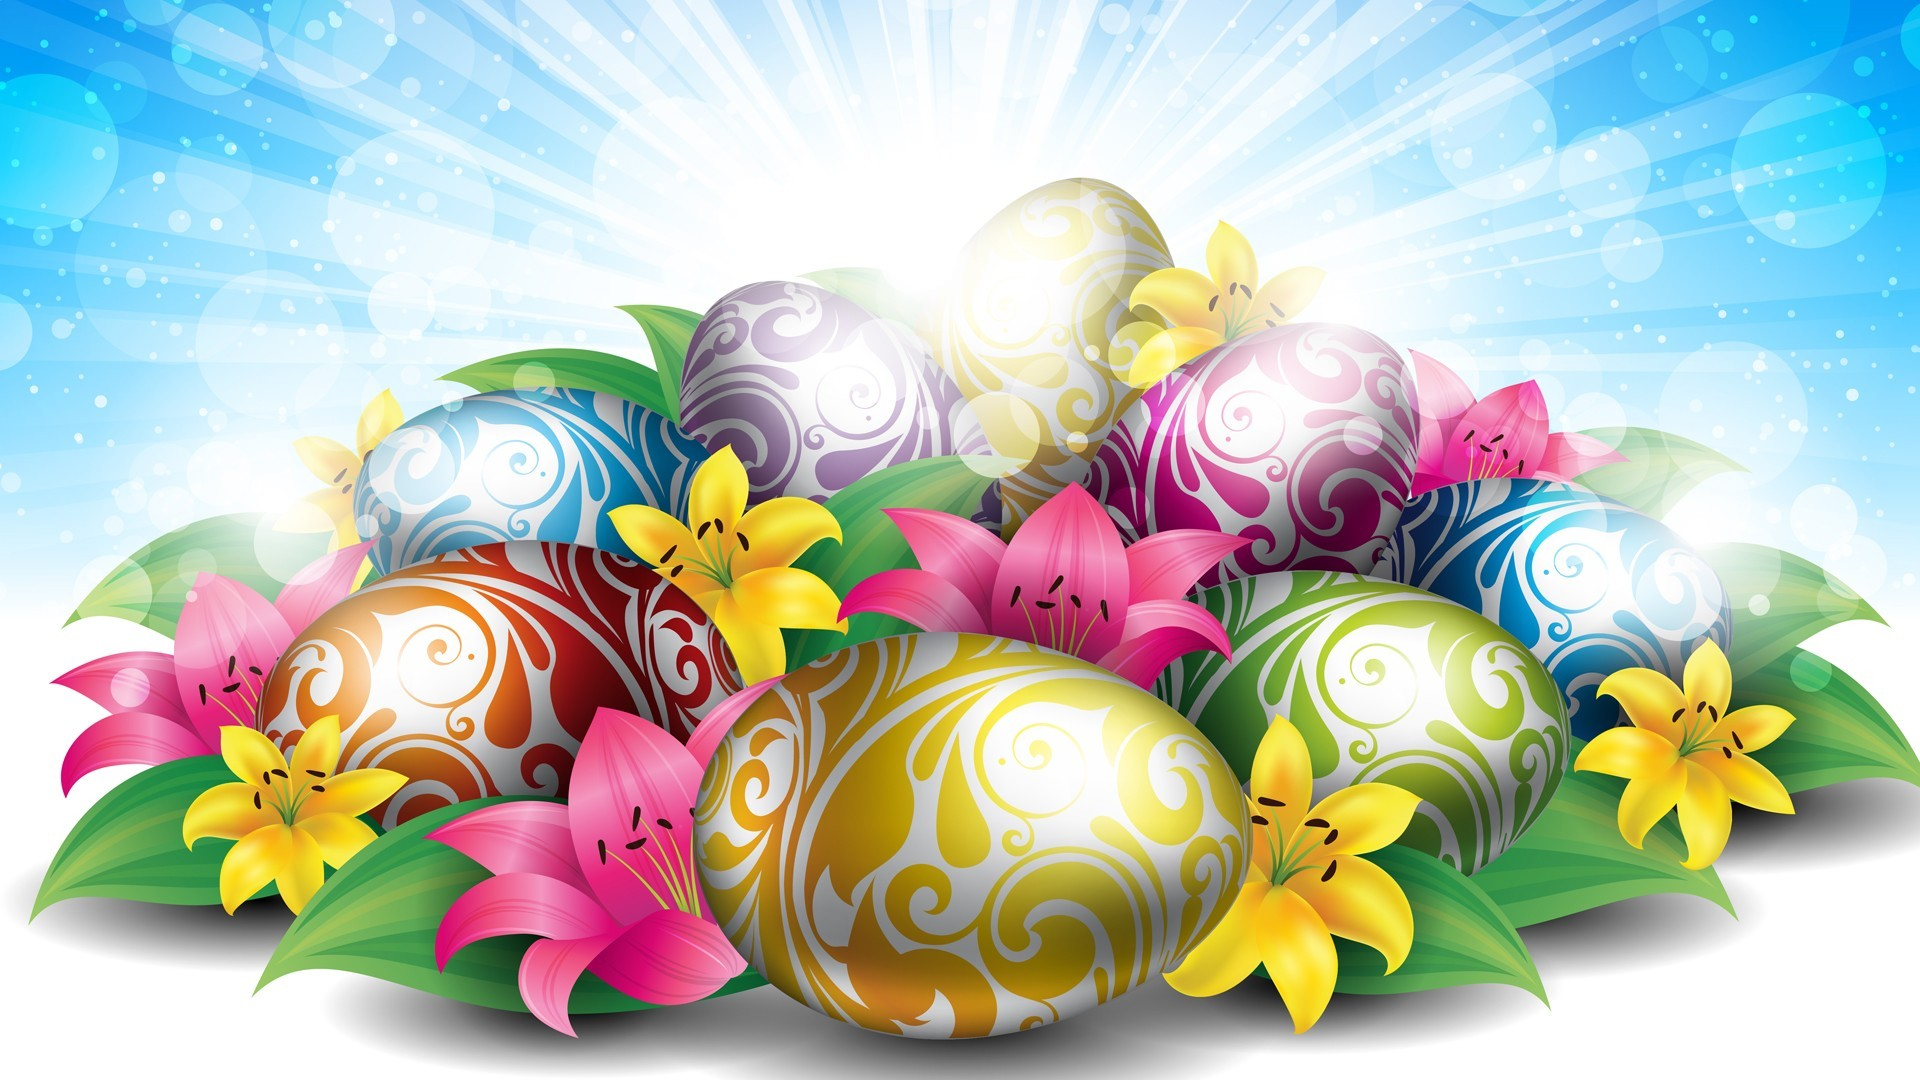 hd wallpaper lilies eggs for easter – Background Wallpapers for your .